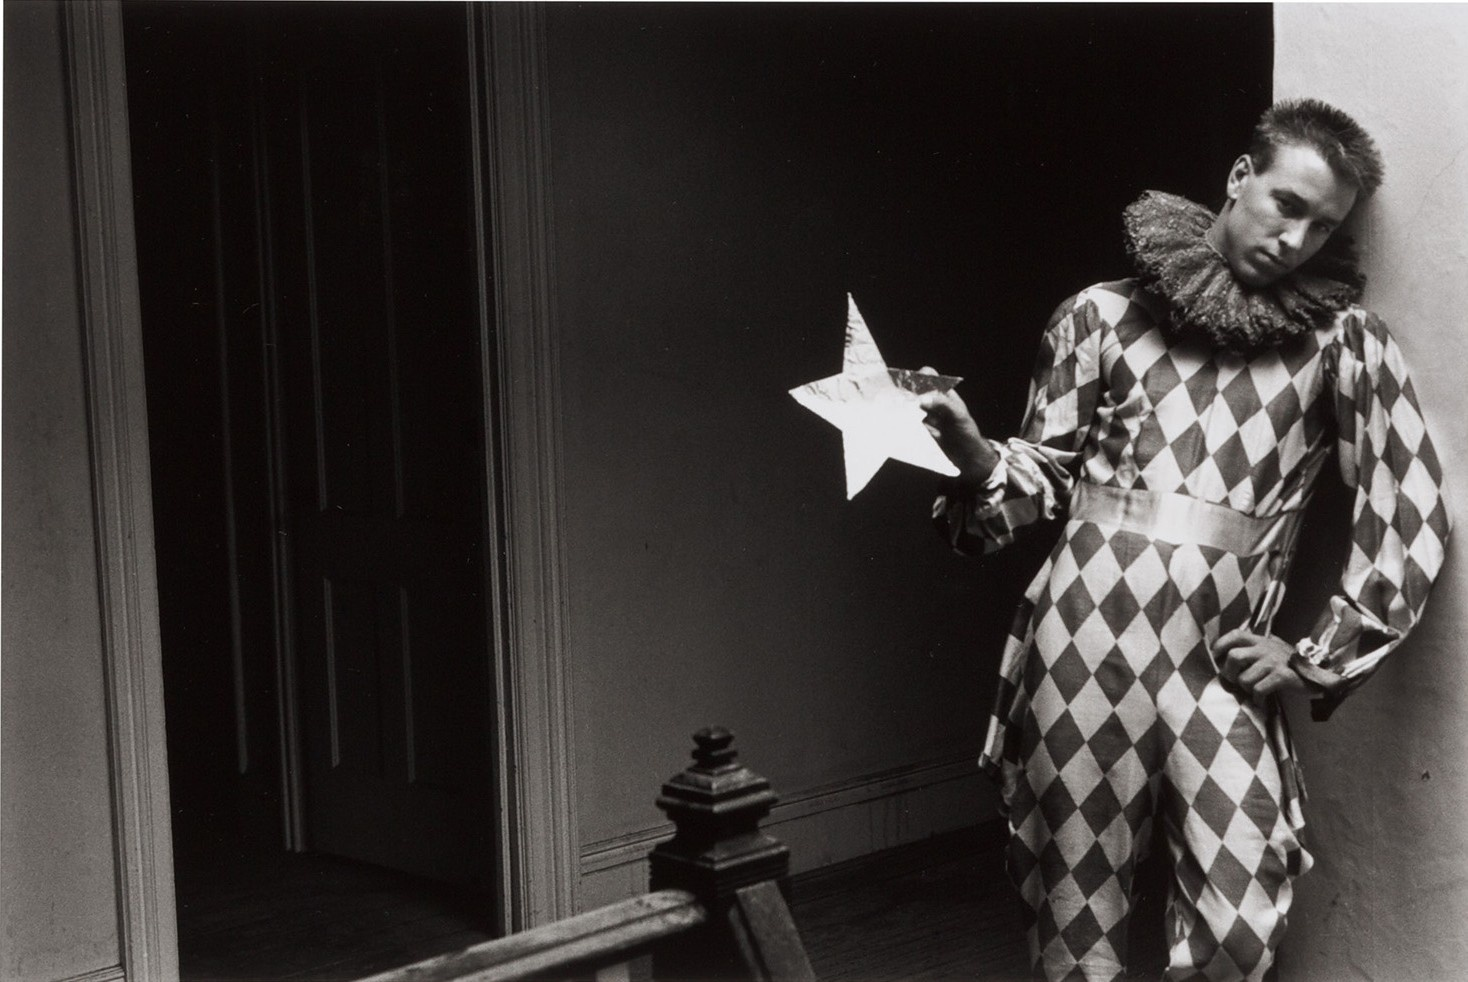 A black and white photograph of a young, light-skinned man wearing a clown costume holding a paper, gold star in a stairway.